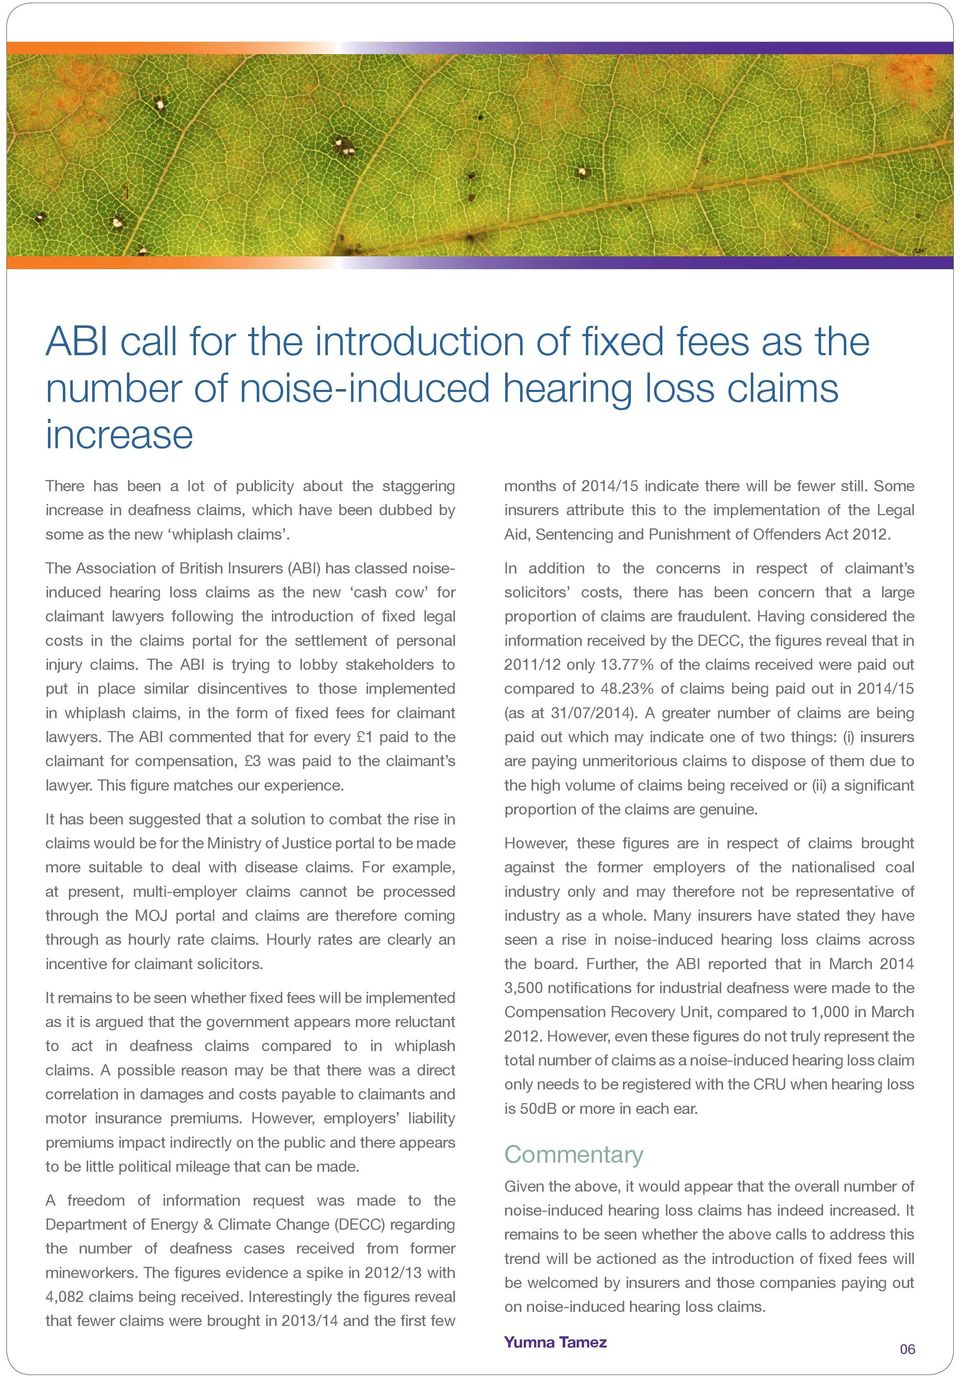 The Association of British Insurers (ABI) has classed noiseinduced hearing loss claims as the new cash cow for claimant lawyers following the introduction of fixed legal costs in the claims portal